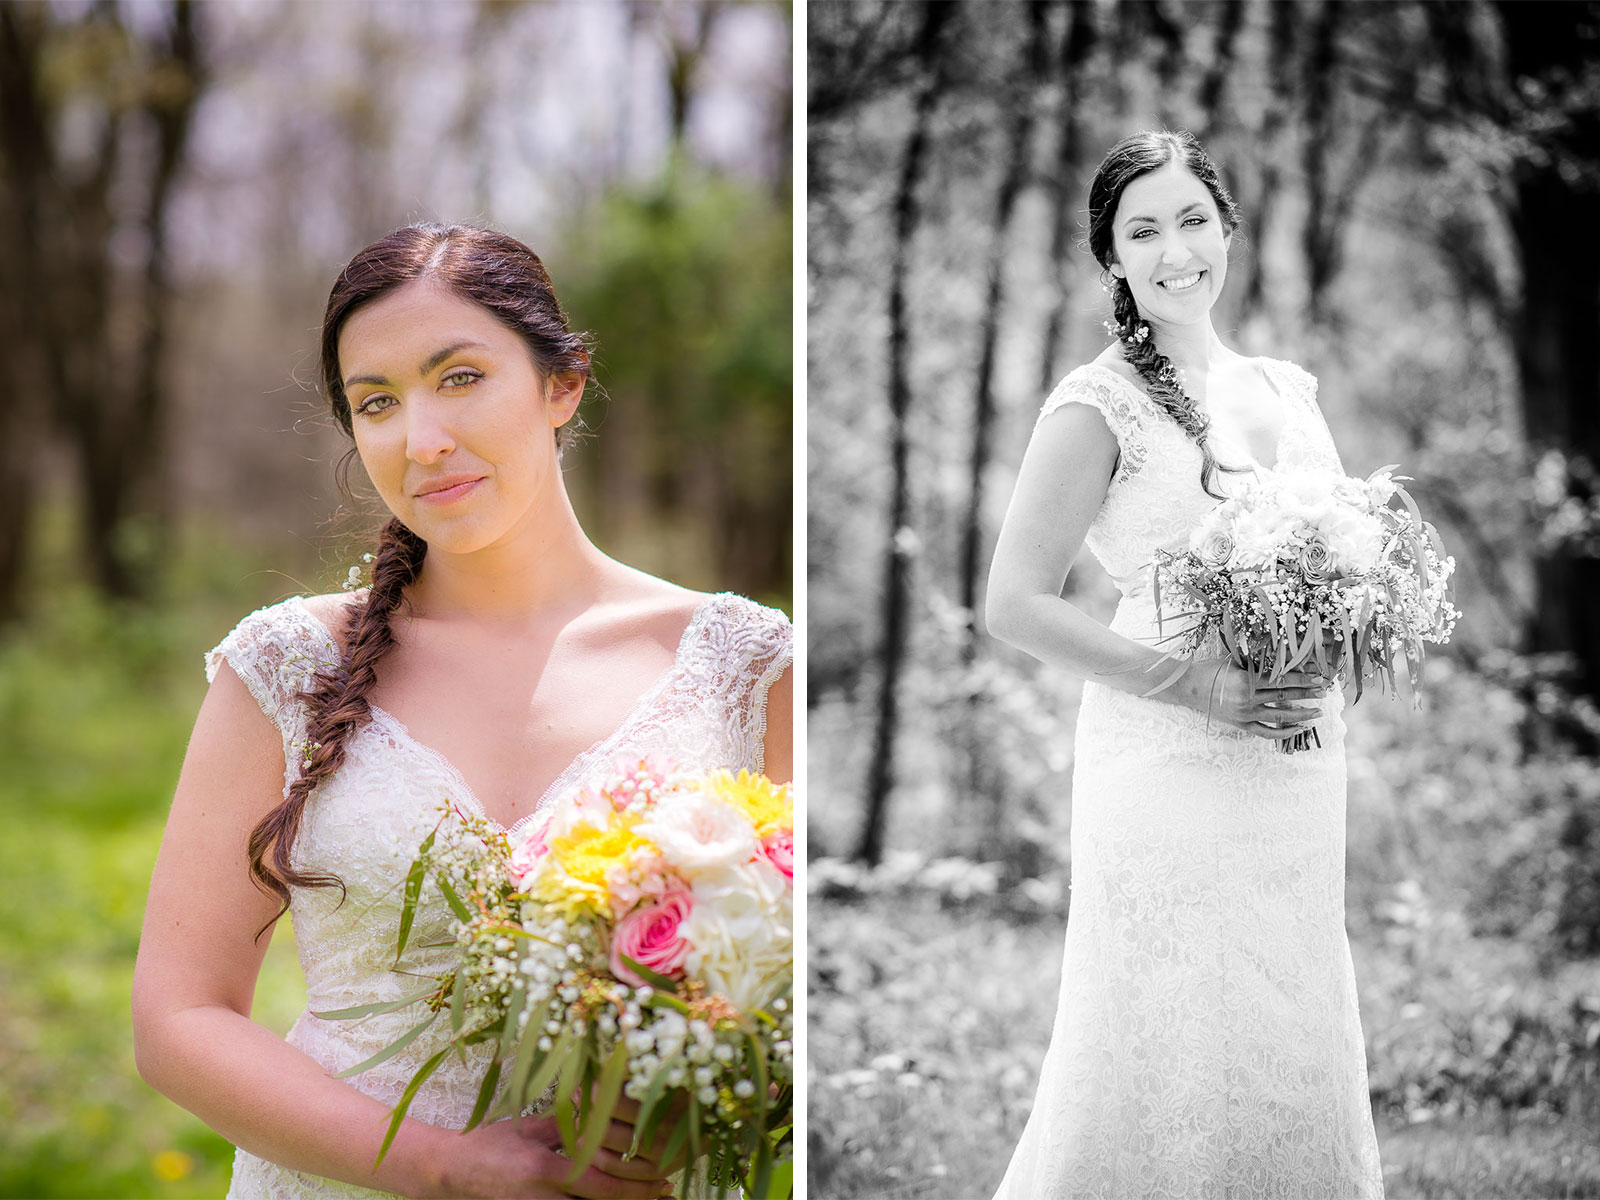 Eric_and_Christy_Photography_Blog_Katie_Travis_Wedding-23-24